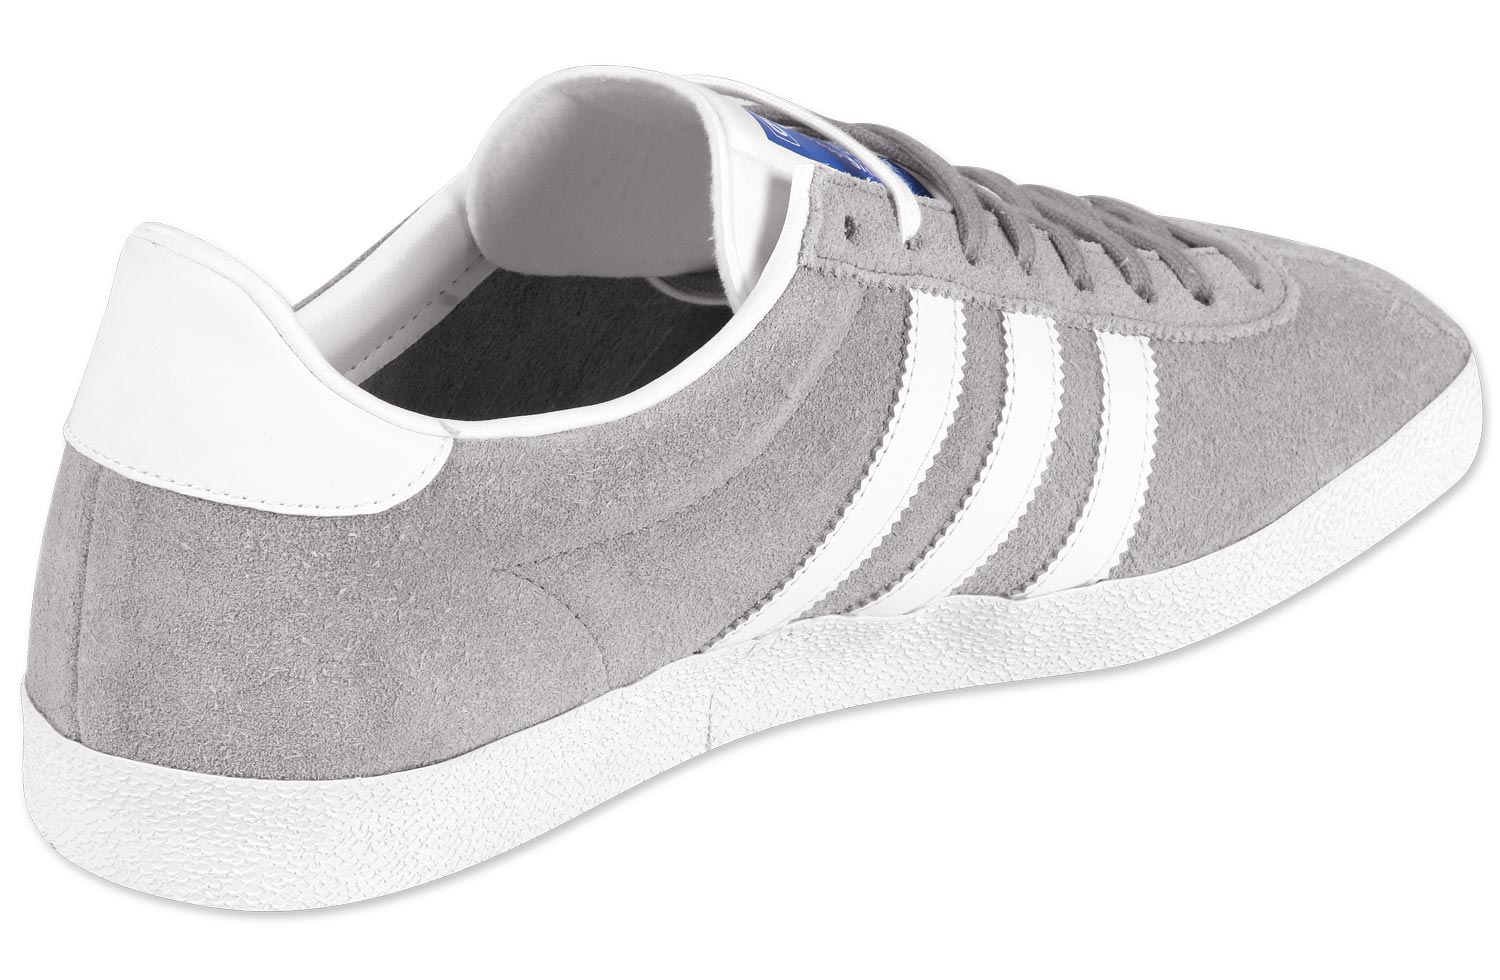 the latest c2a61 a64b1 adidas gazelle femme bleu clair